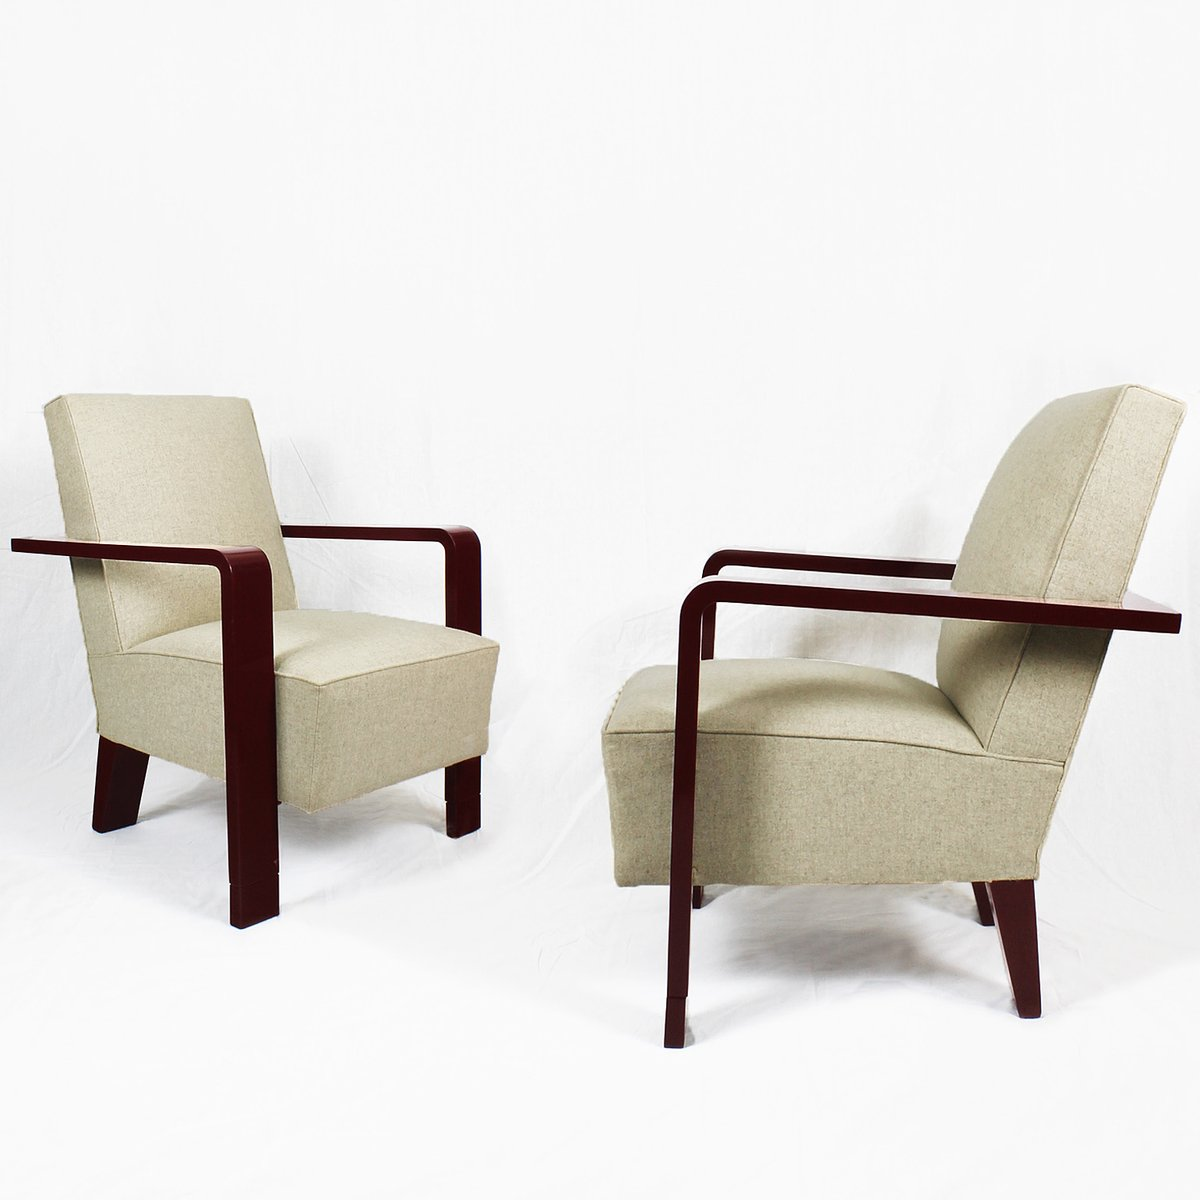 Kubistische Art Deco Sessel, 1930er, 2er Set